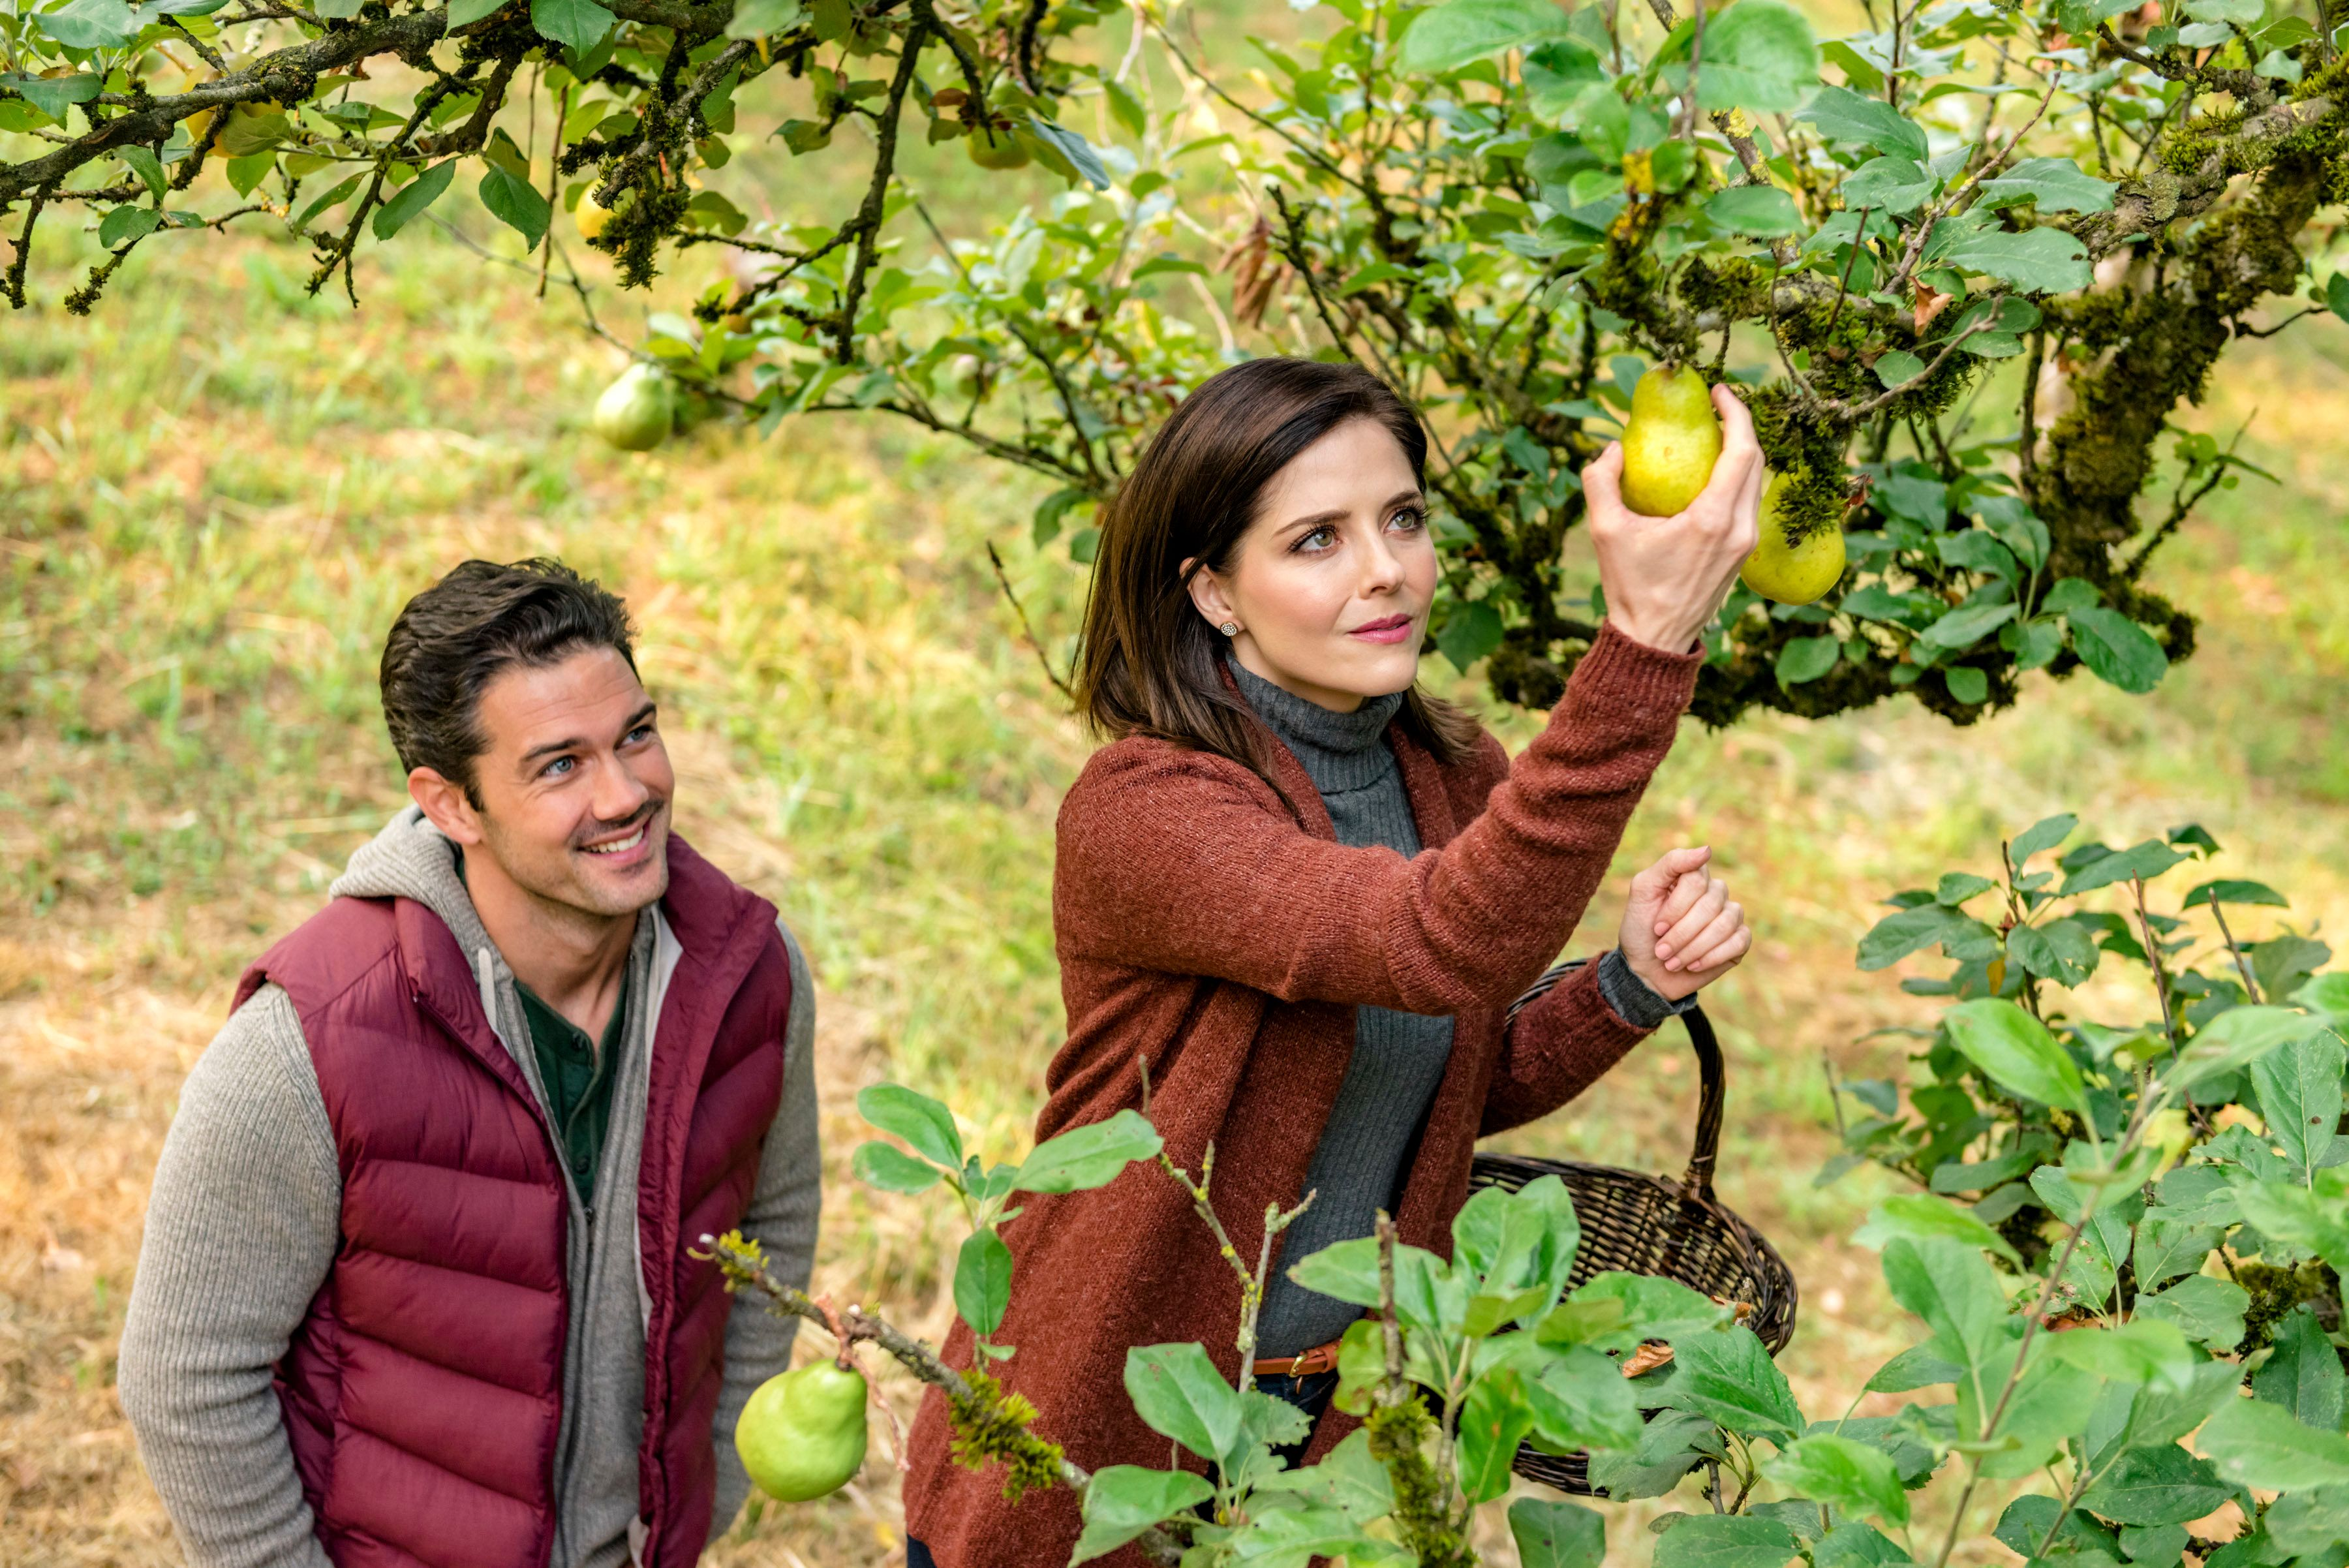 Ryan Paeveyand Jen Lilley get their harvest on in